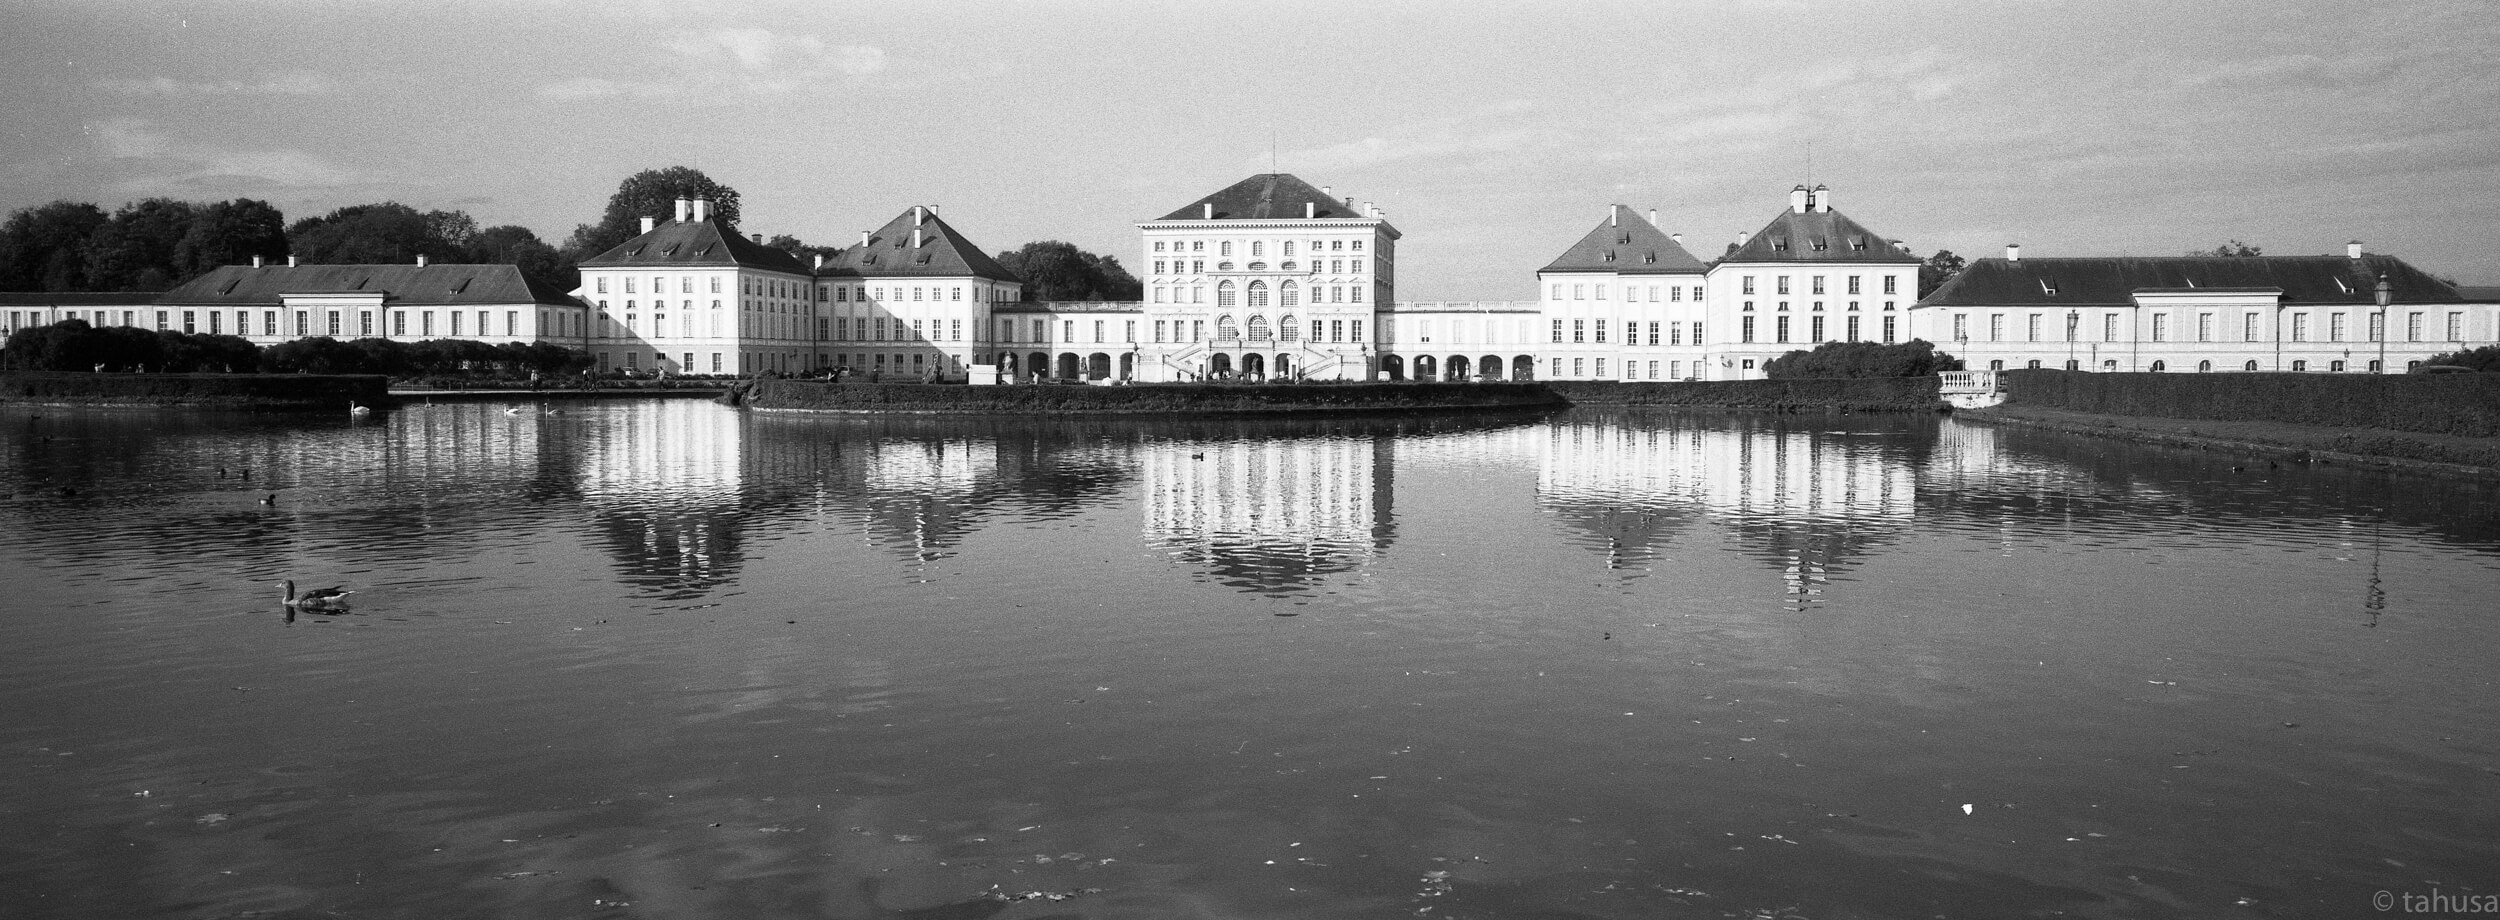 Xpan-Pano-45mm-f4-Sightseeing-Nymphenburg-Palace-Munich-GermanyPanoramic picture-pano-hasselblad-Medium-format-Black-and-white-BW-B&W-film-analog-snap-snapshot-Kentmere-400-iso400-ilford-Epson-V700-scanner